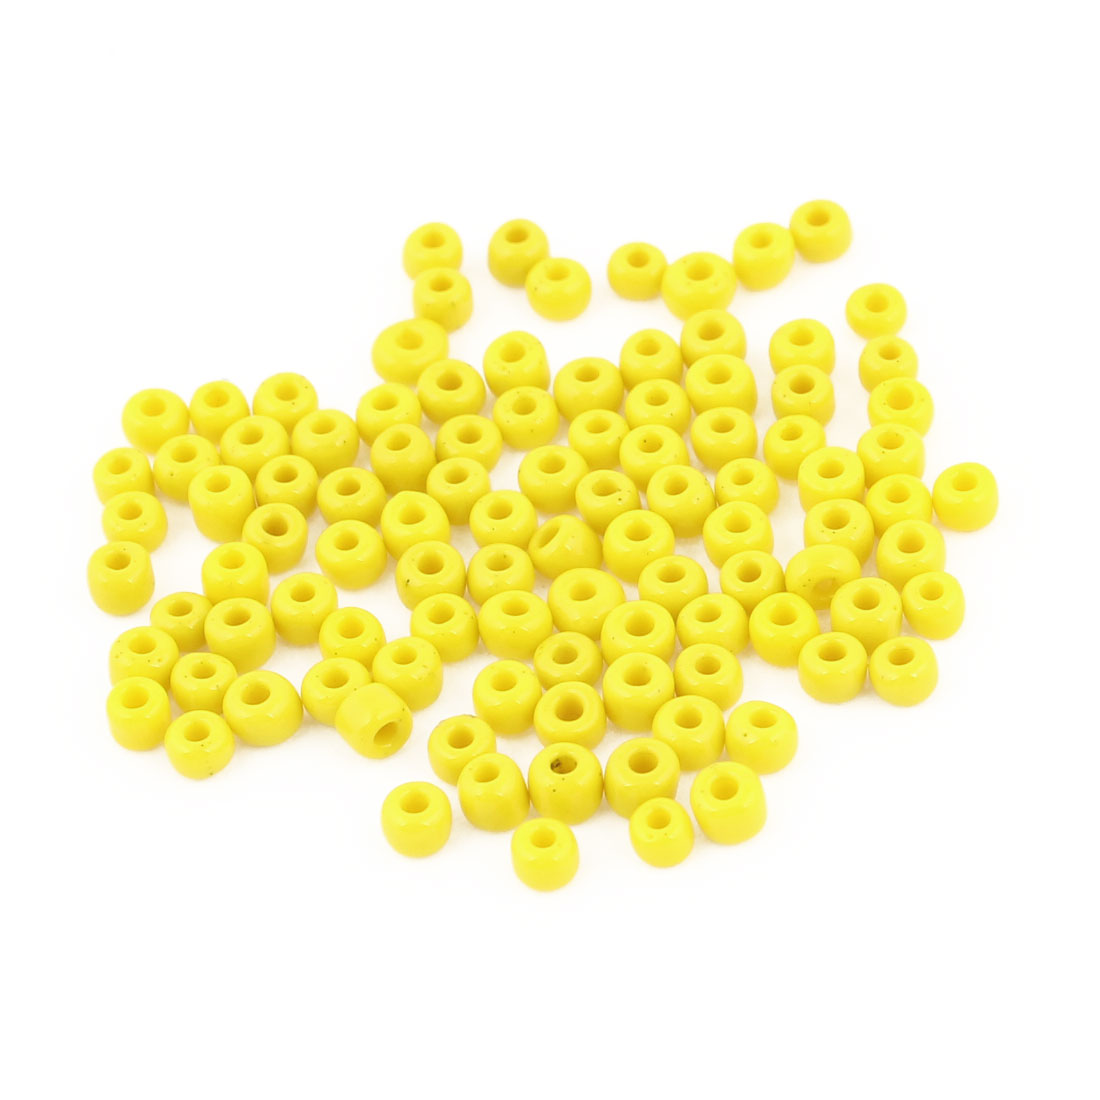 100PCS 2.7mm x 2.2mm Round Circle Shaped Hard Plastic Beads Yellow for Fishing